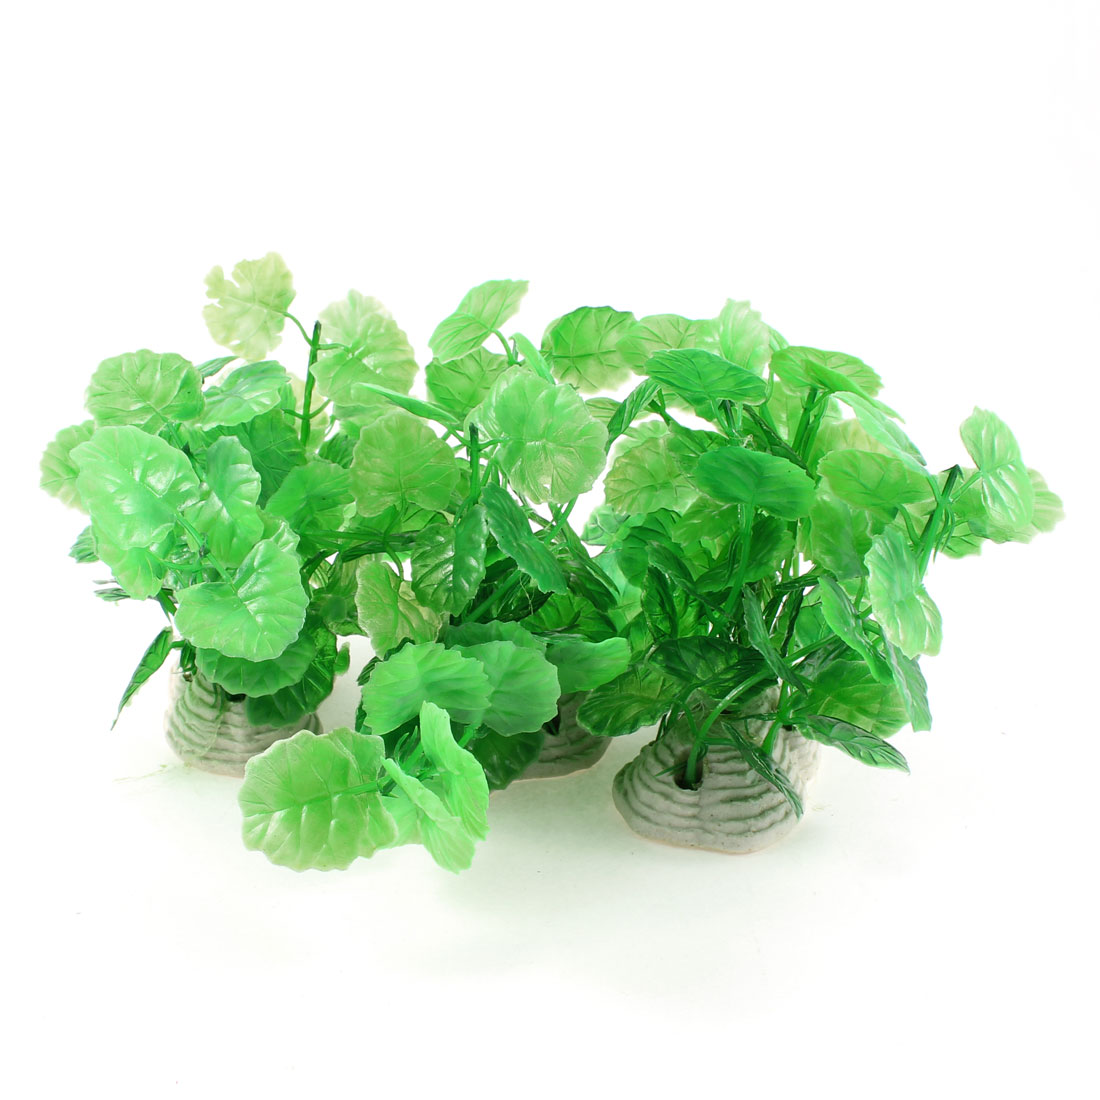 3 Pcs Fish Tank Green Water Grass Plastic Aquatic Plants Ornament